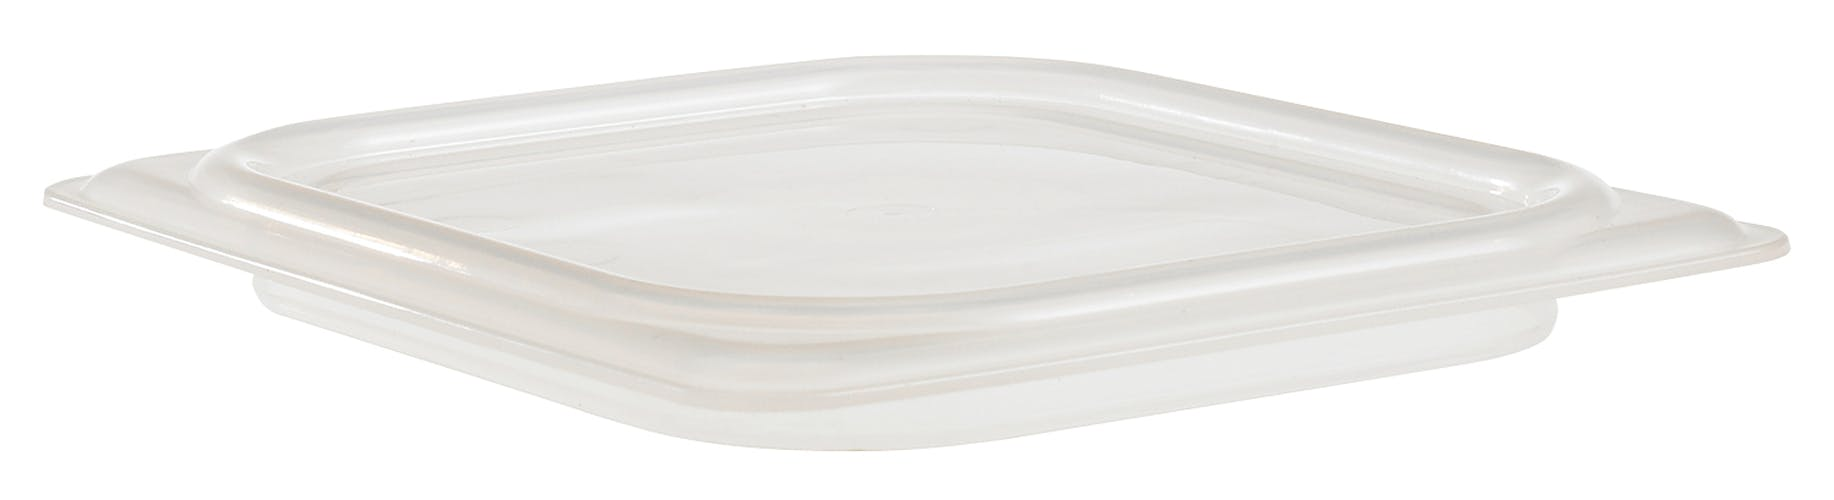 60PPCWSC190 Sixth Size Seal Cover for Food Pans